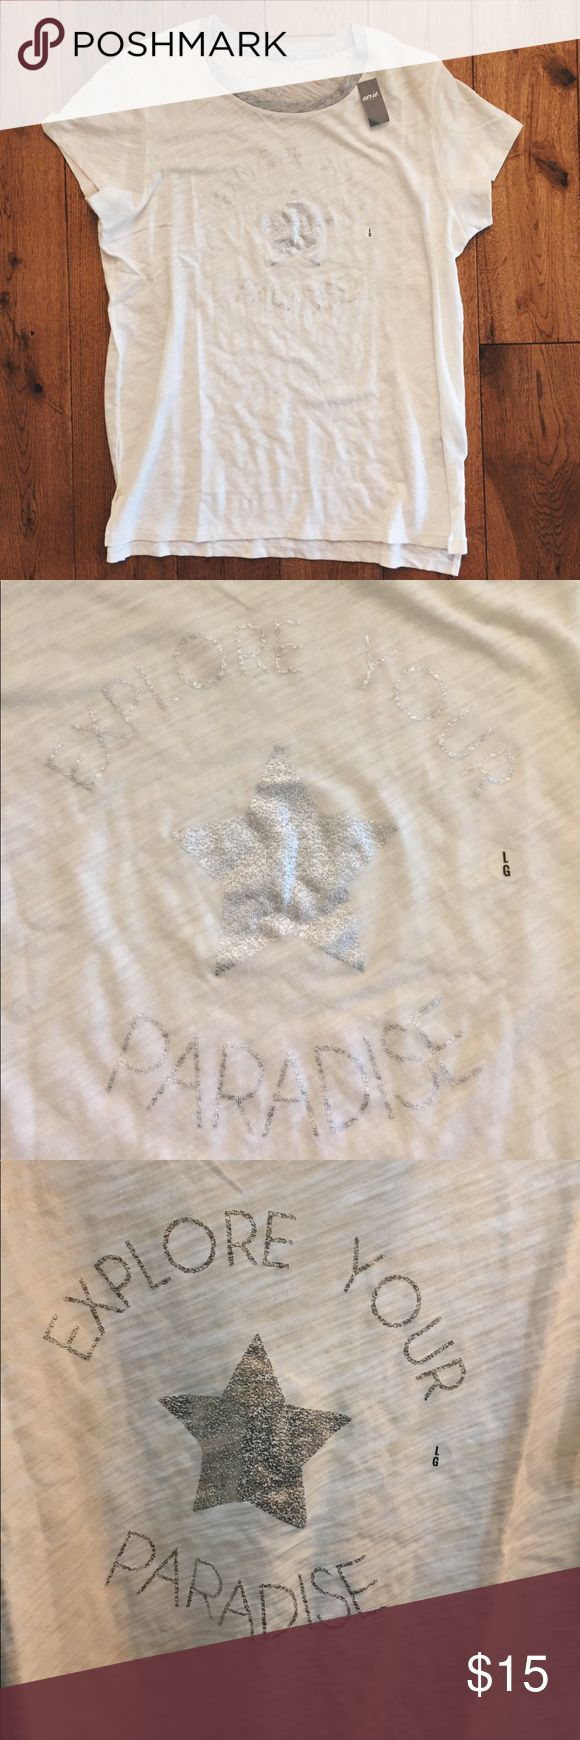 "Aerie ""Real Soft"" White & Silver Tee Super cute ""Real Soft Tee"" from Aerie. Never worn; never even tried on. Shimmery silver words that say ""explore your paradise"" with a star in the middle. Comes with original plastic bag it was shipped in. aerie Tops Tees - Short Sleeve"